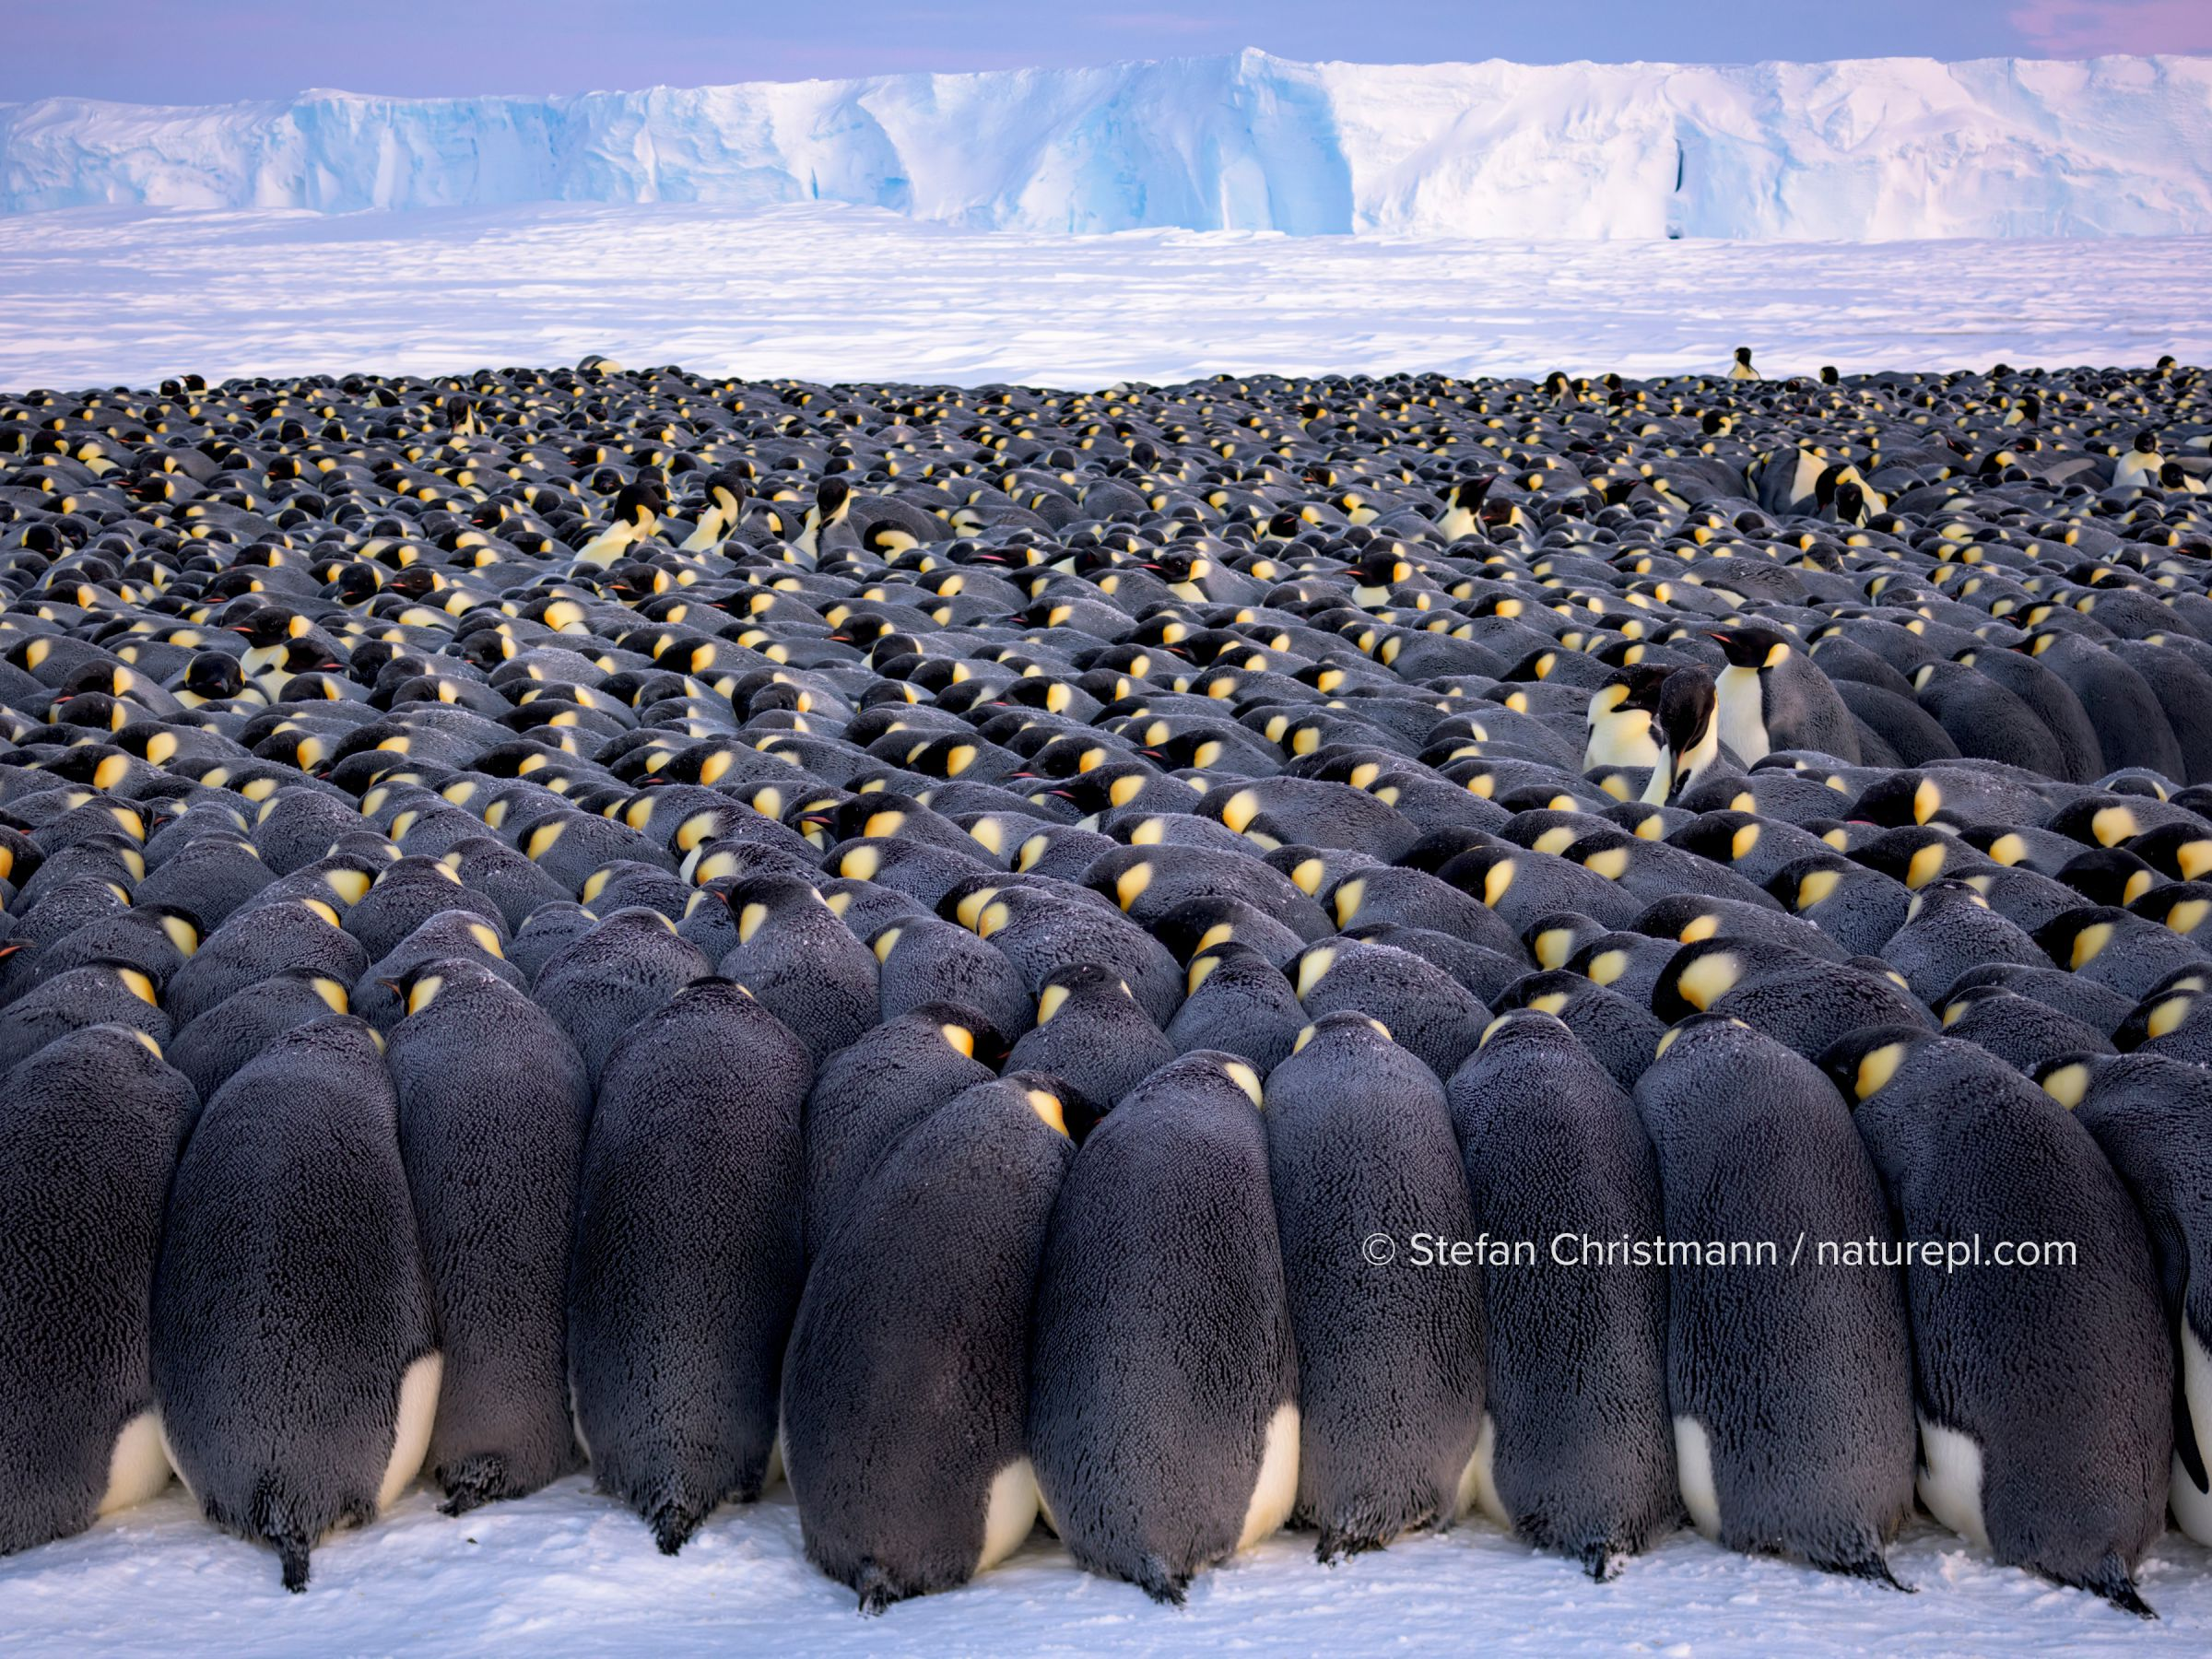 Emperor penguin (Aptenodytes forsteri) breeding colony, males huddling on sea ice during polar night, incubating eggs, ice shelf in background. Atka Bay, Antarctica. July 2017.